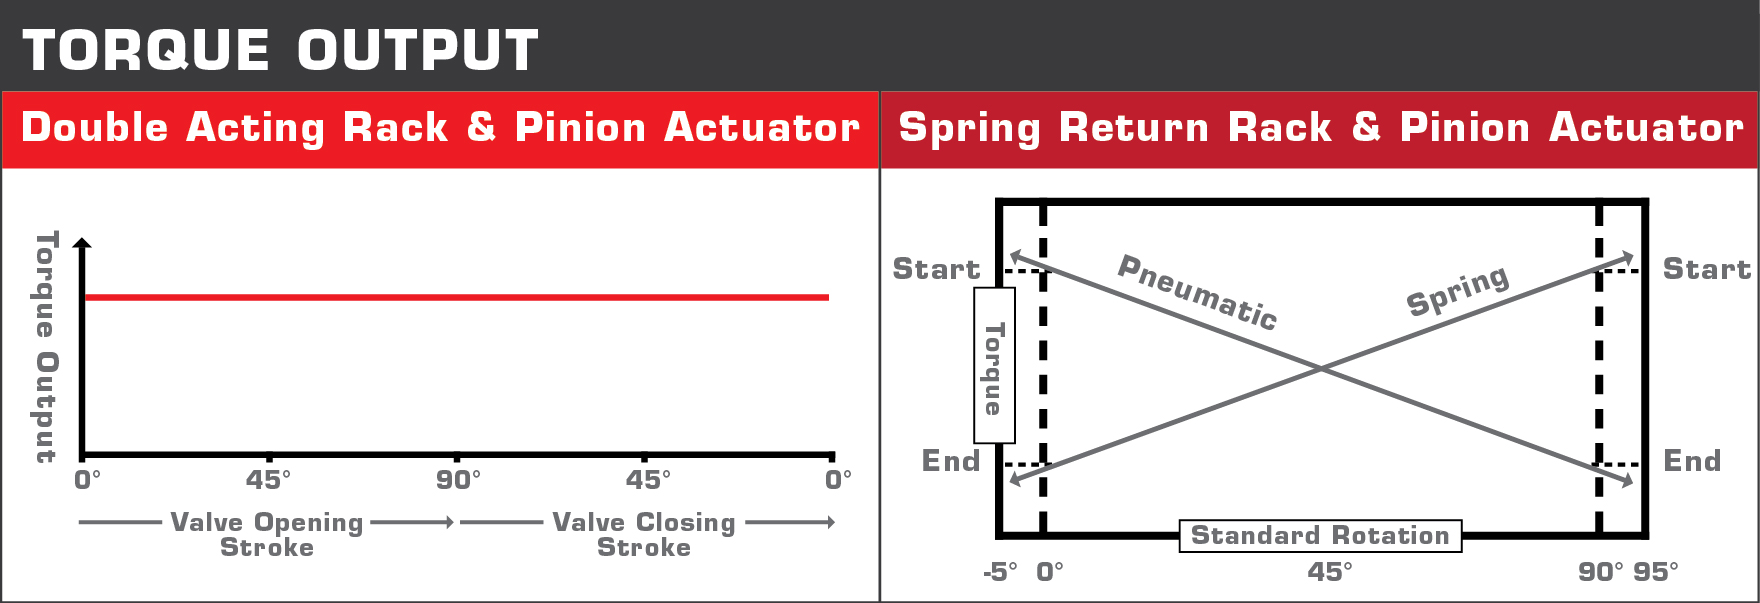 How to Properly Size an Actuator - Part 2